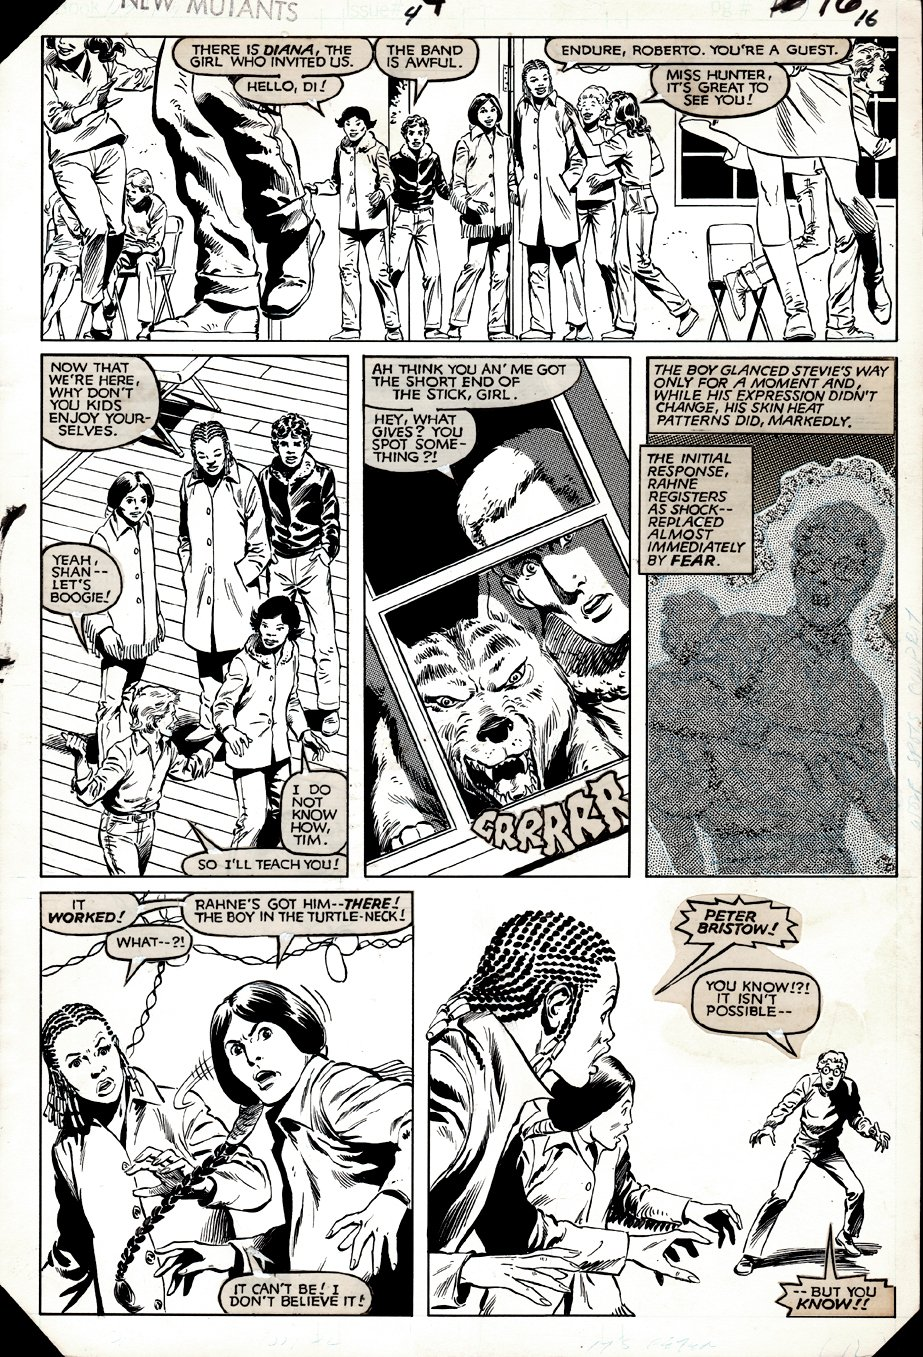 New Mutants #4 p 16 (ENTIRE TEAM!) 1983